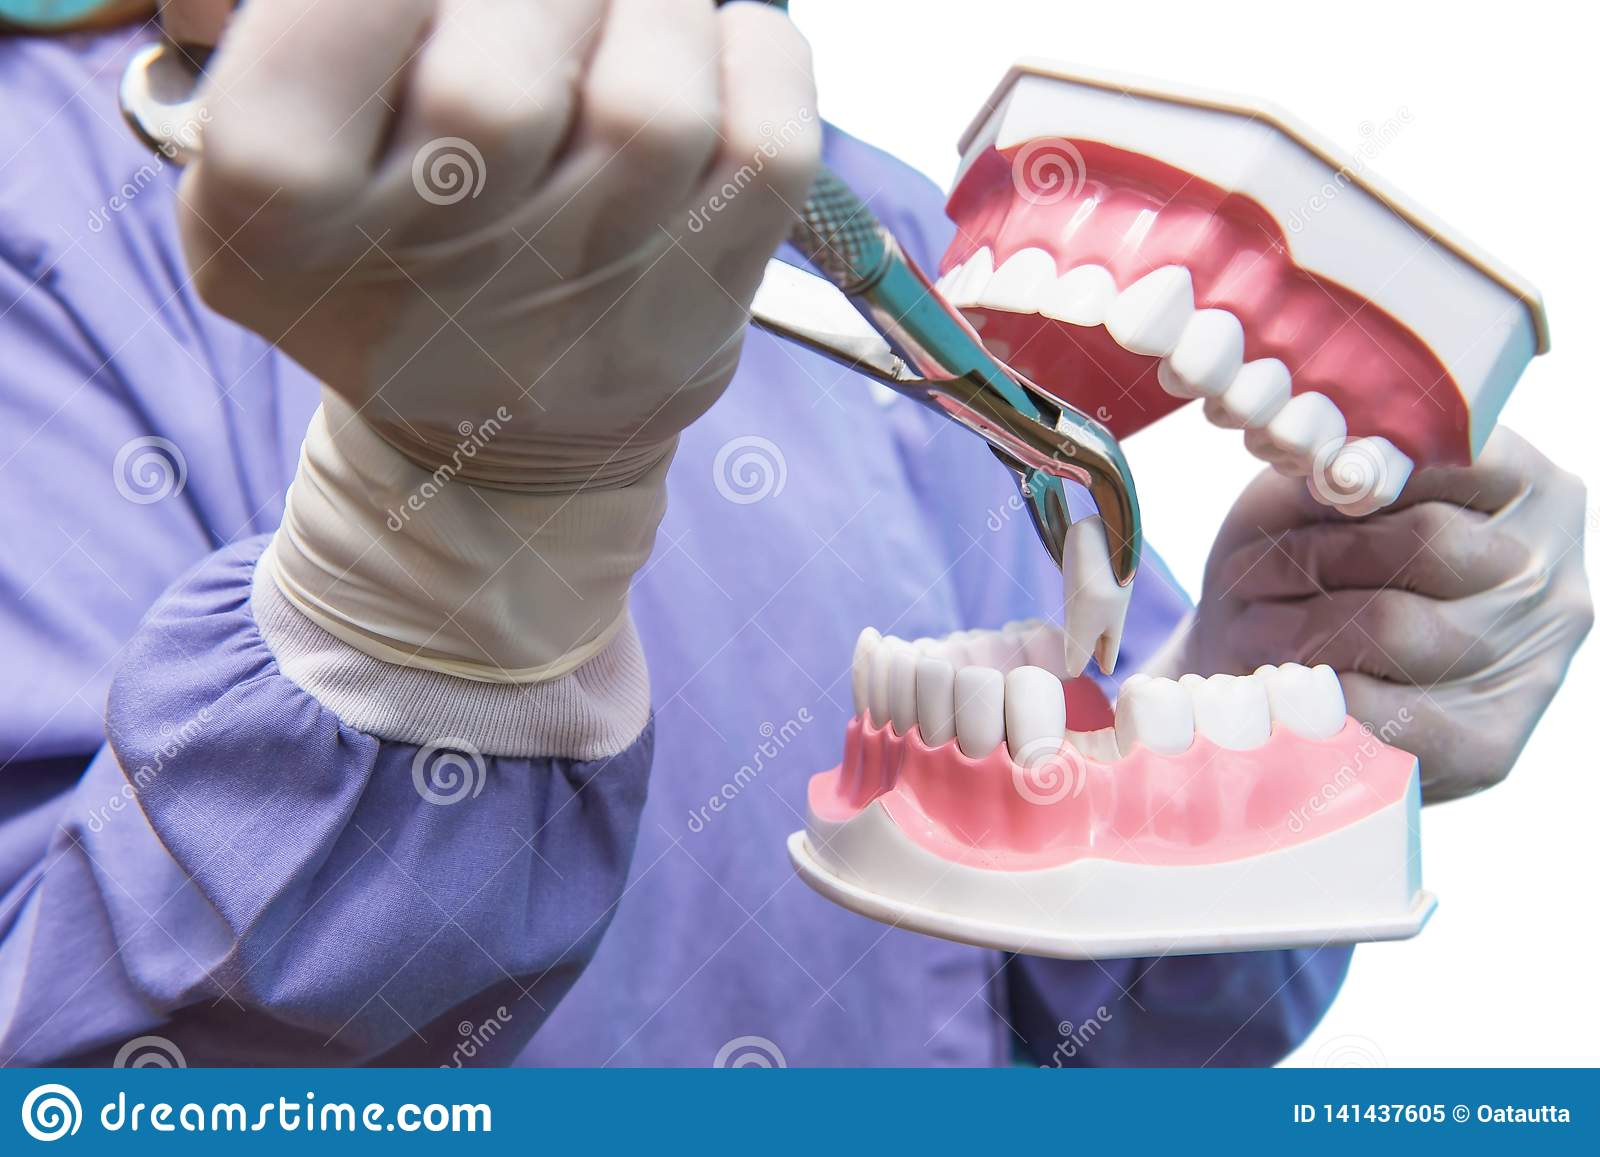 The Dental Model Is Used To Demonstration Of Tooth